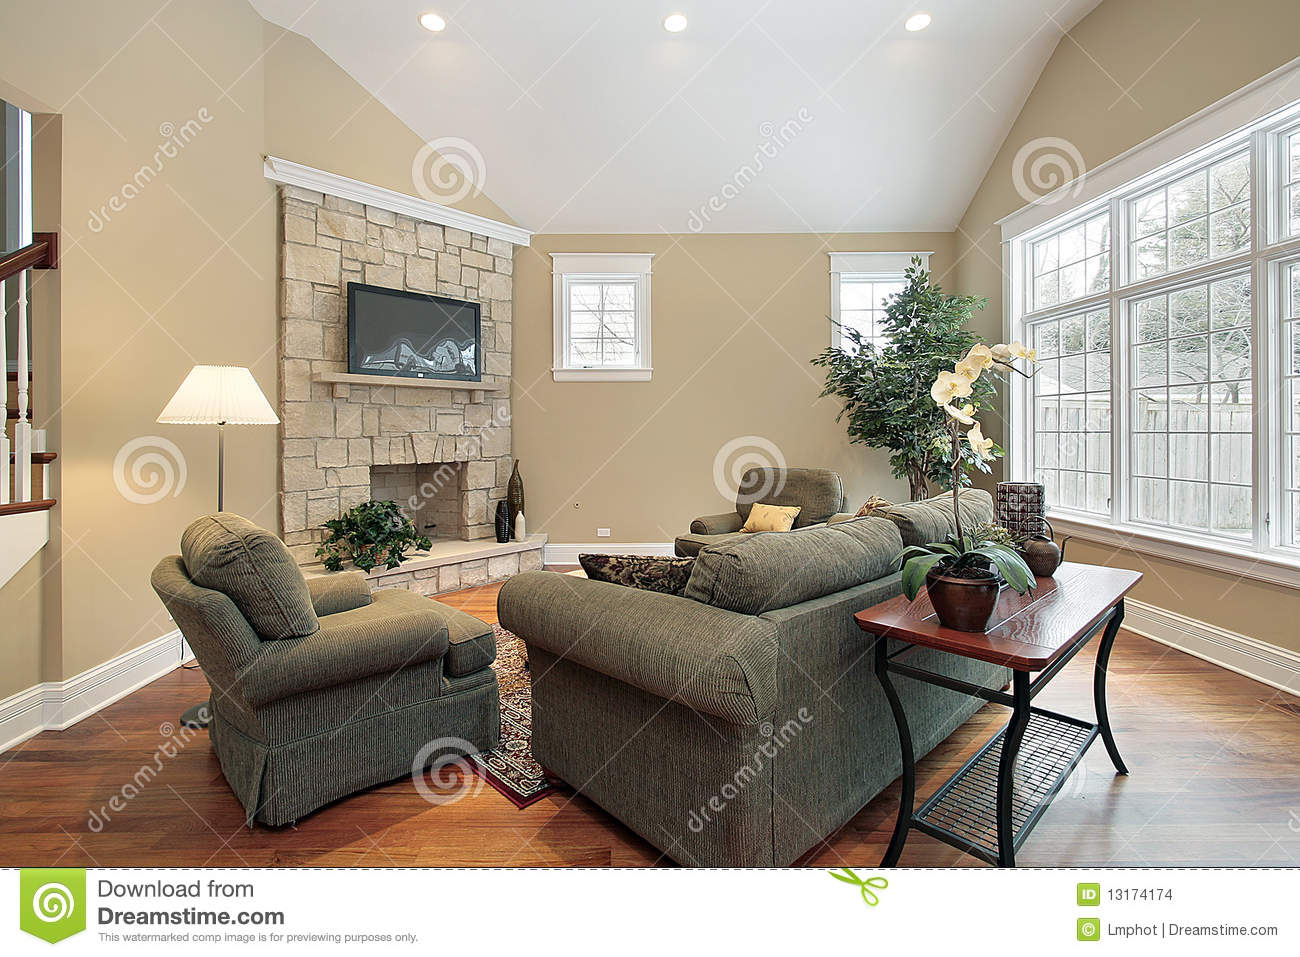 Living Room With Stone Fireplace living room with stone fireplace stock image - image: 12662391